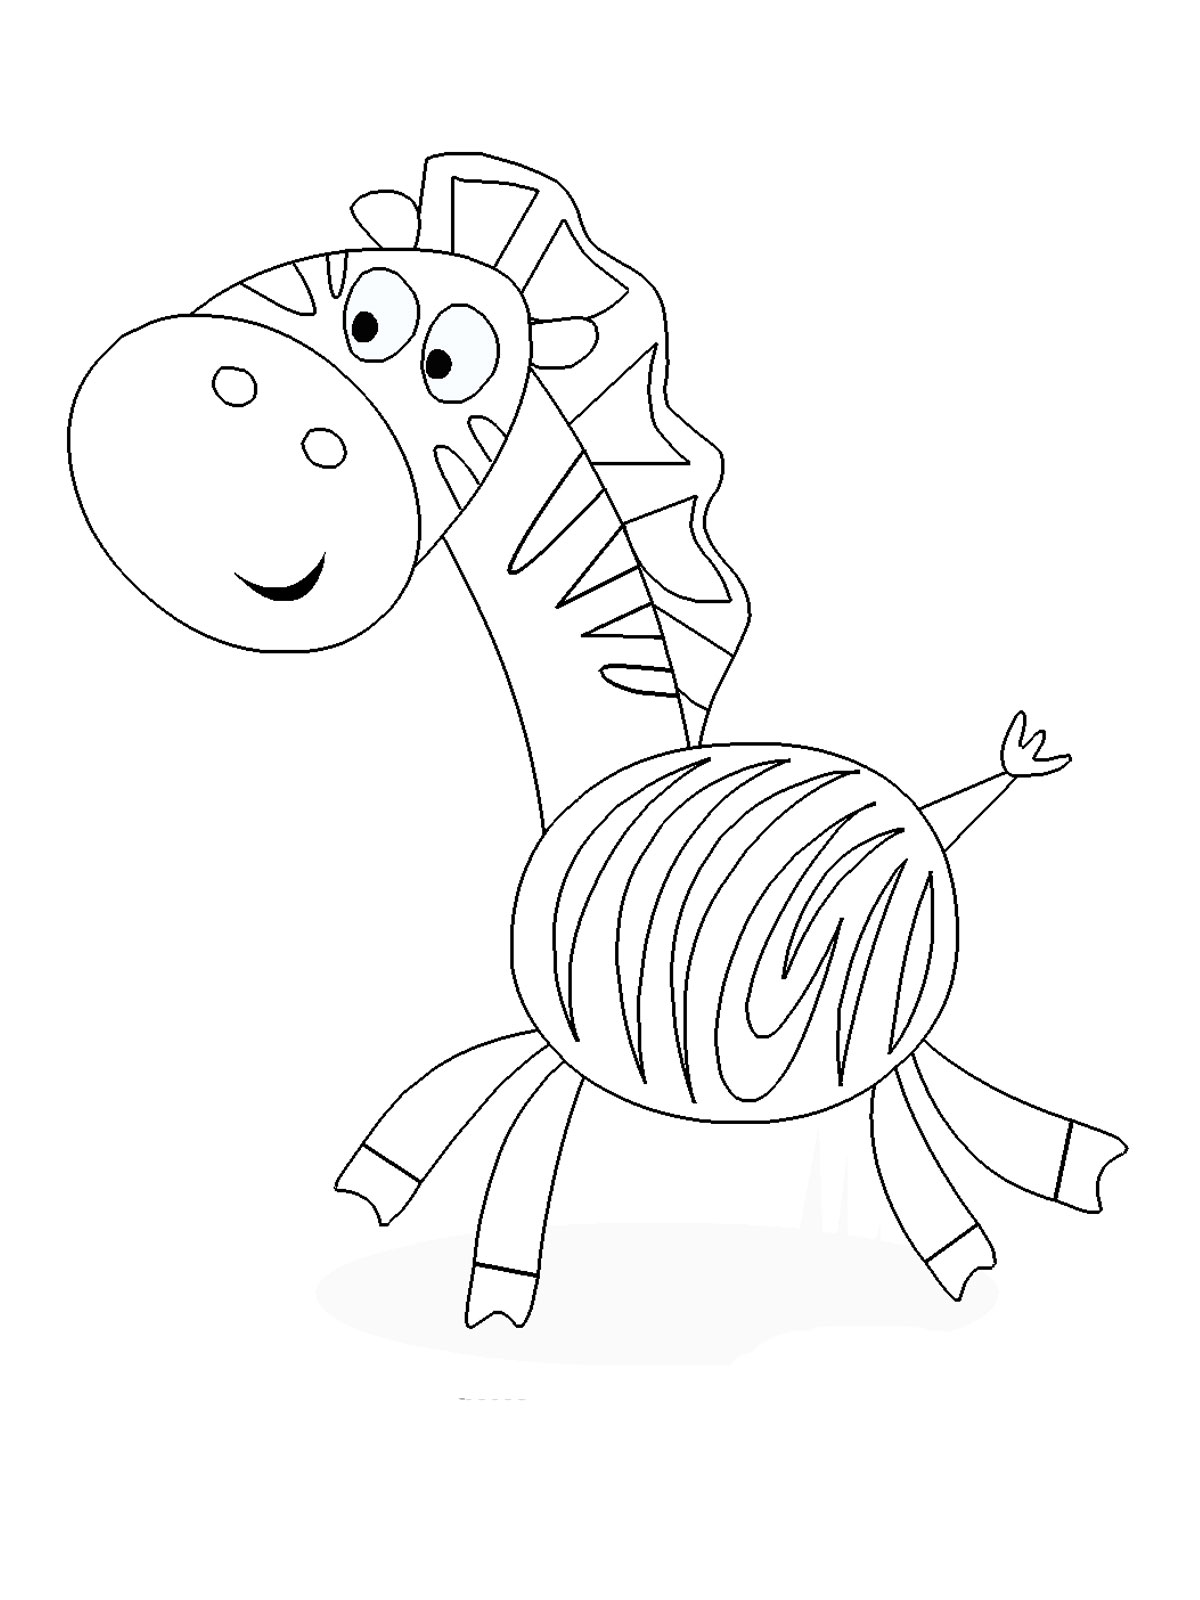 coloring templates for kids inside out coloring pages best coloring pages for kids for kids templates coloring